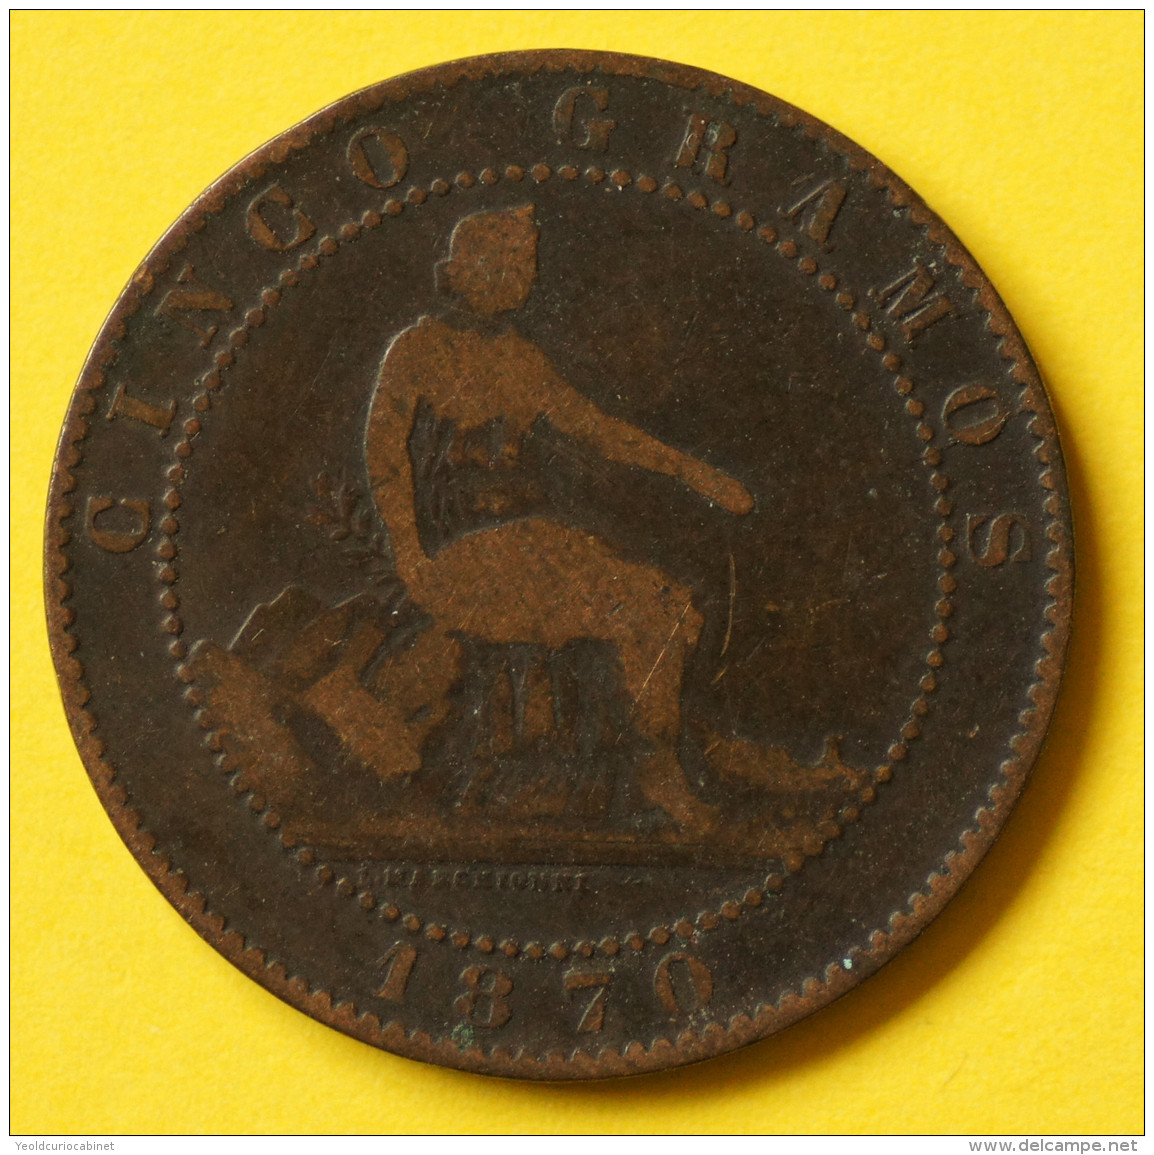 Spain - 5 Centimos - 1870 - Very Good - Other